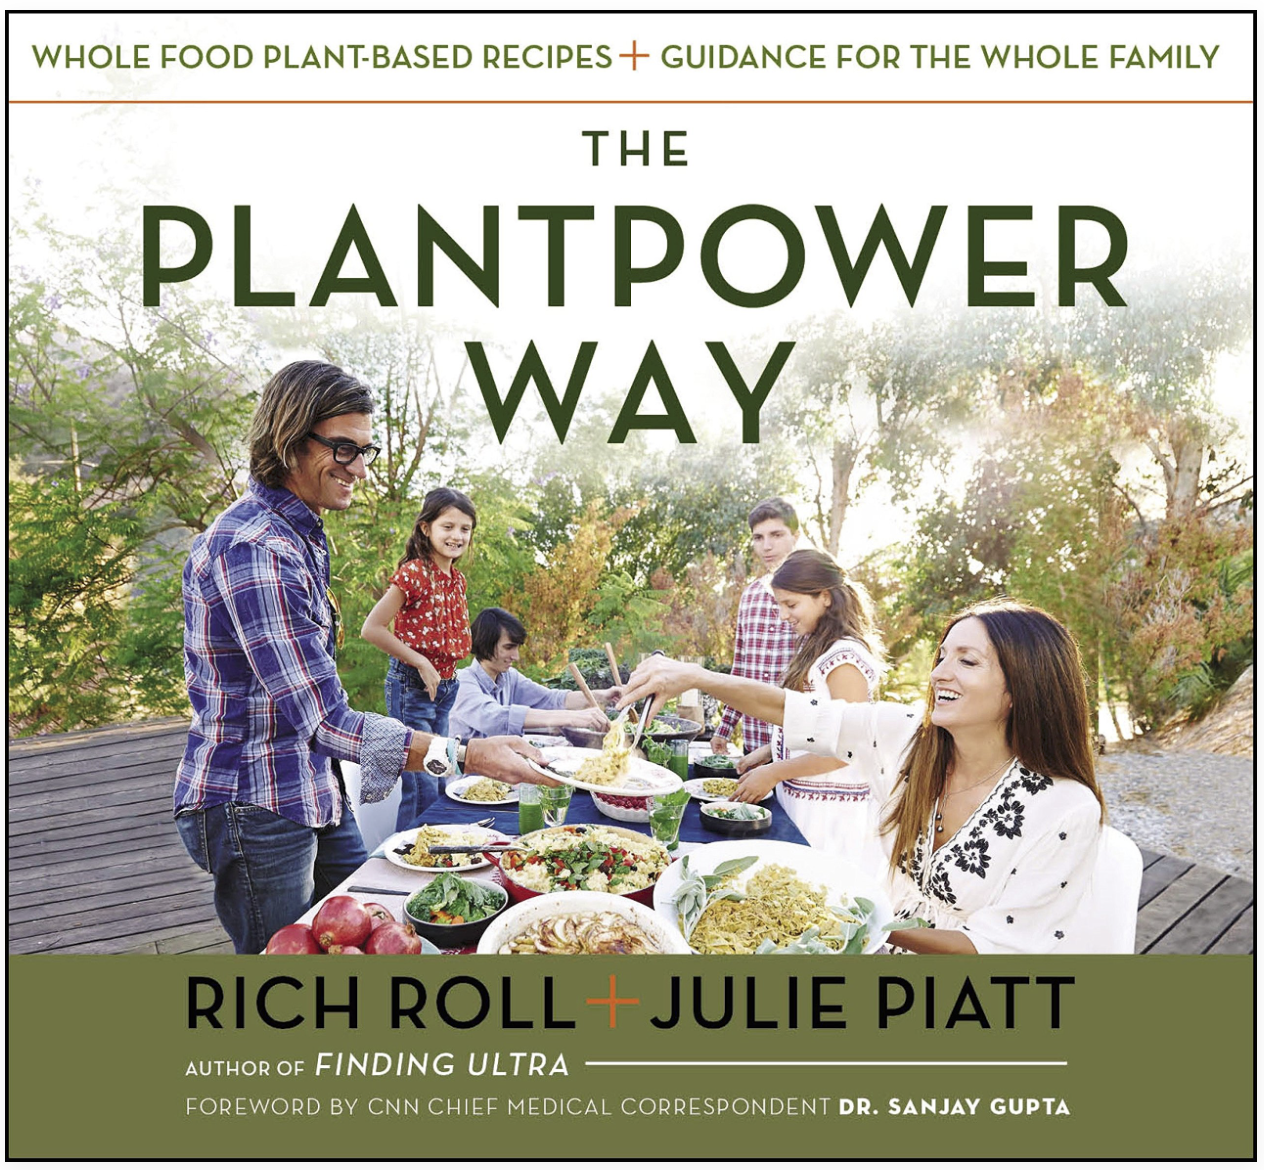 The Plantpower Way - Rich Roll and Julie PiattA beautifully done whole food plant based cookbook with tons of yummy recipes to nourish your body and blow your taste buds away.